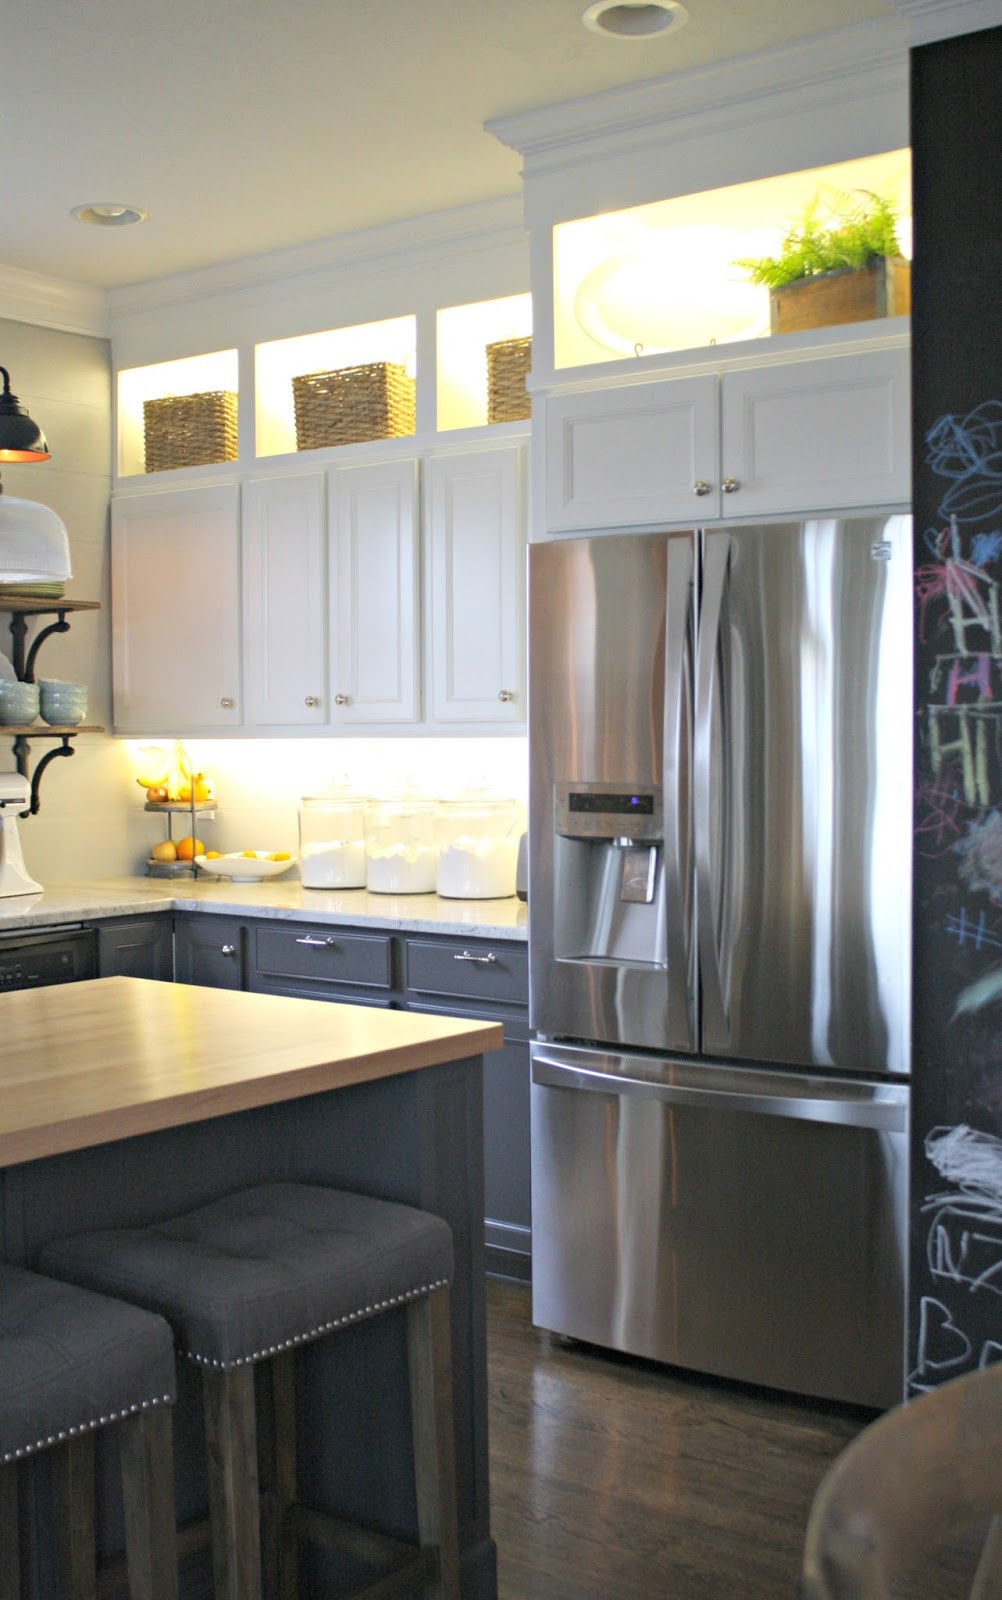 Best ideas about Upper Kitchen Cabinets . Save or Pin DIY Upper and Lower Cabinet Lighting from Thrifty Decor Chick Now.